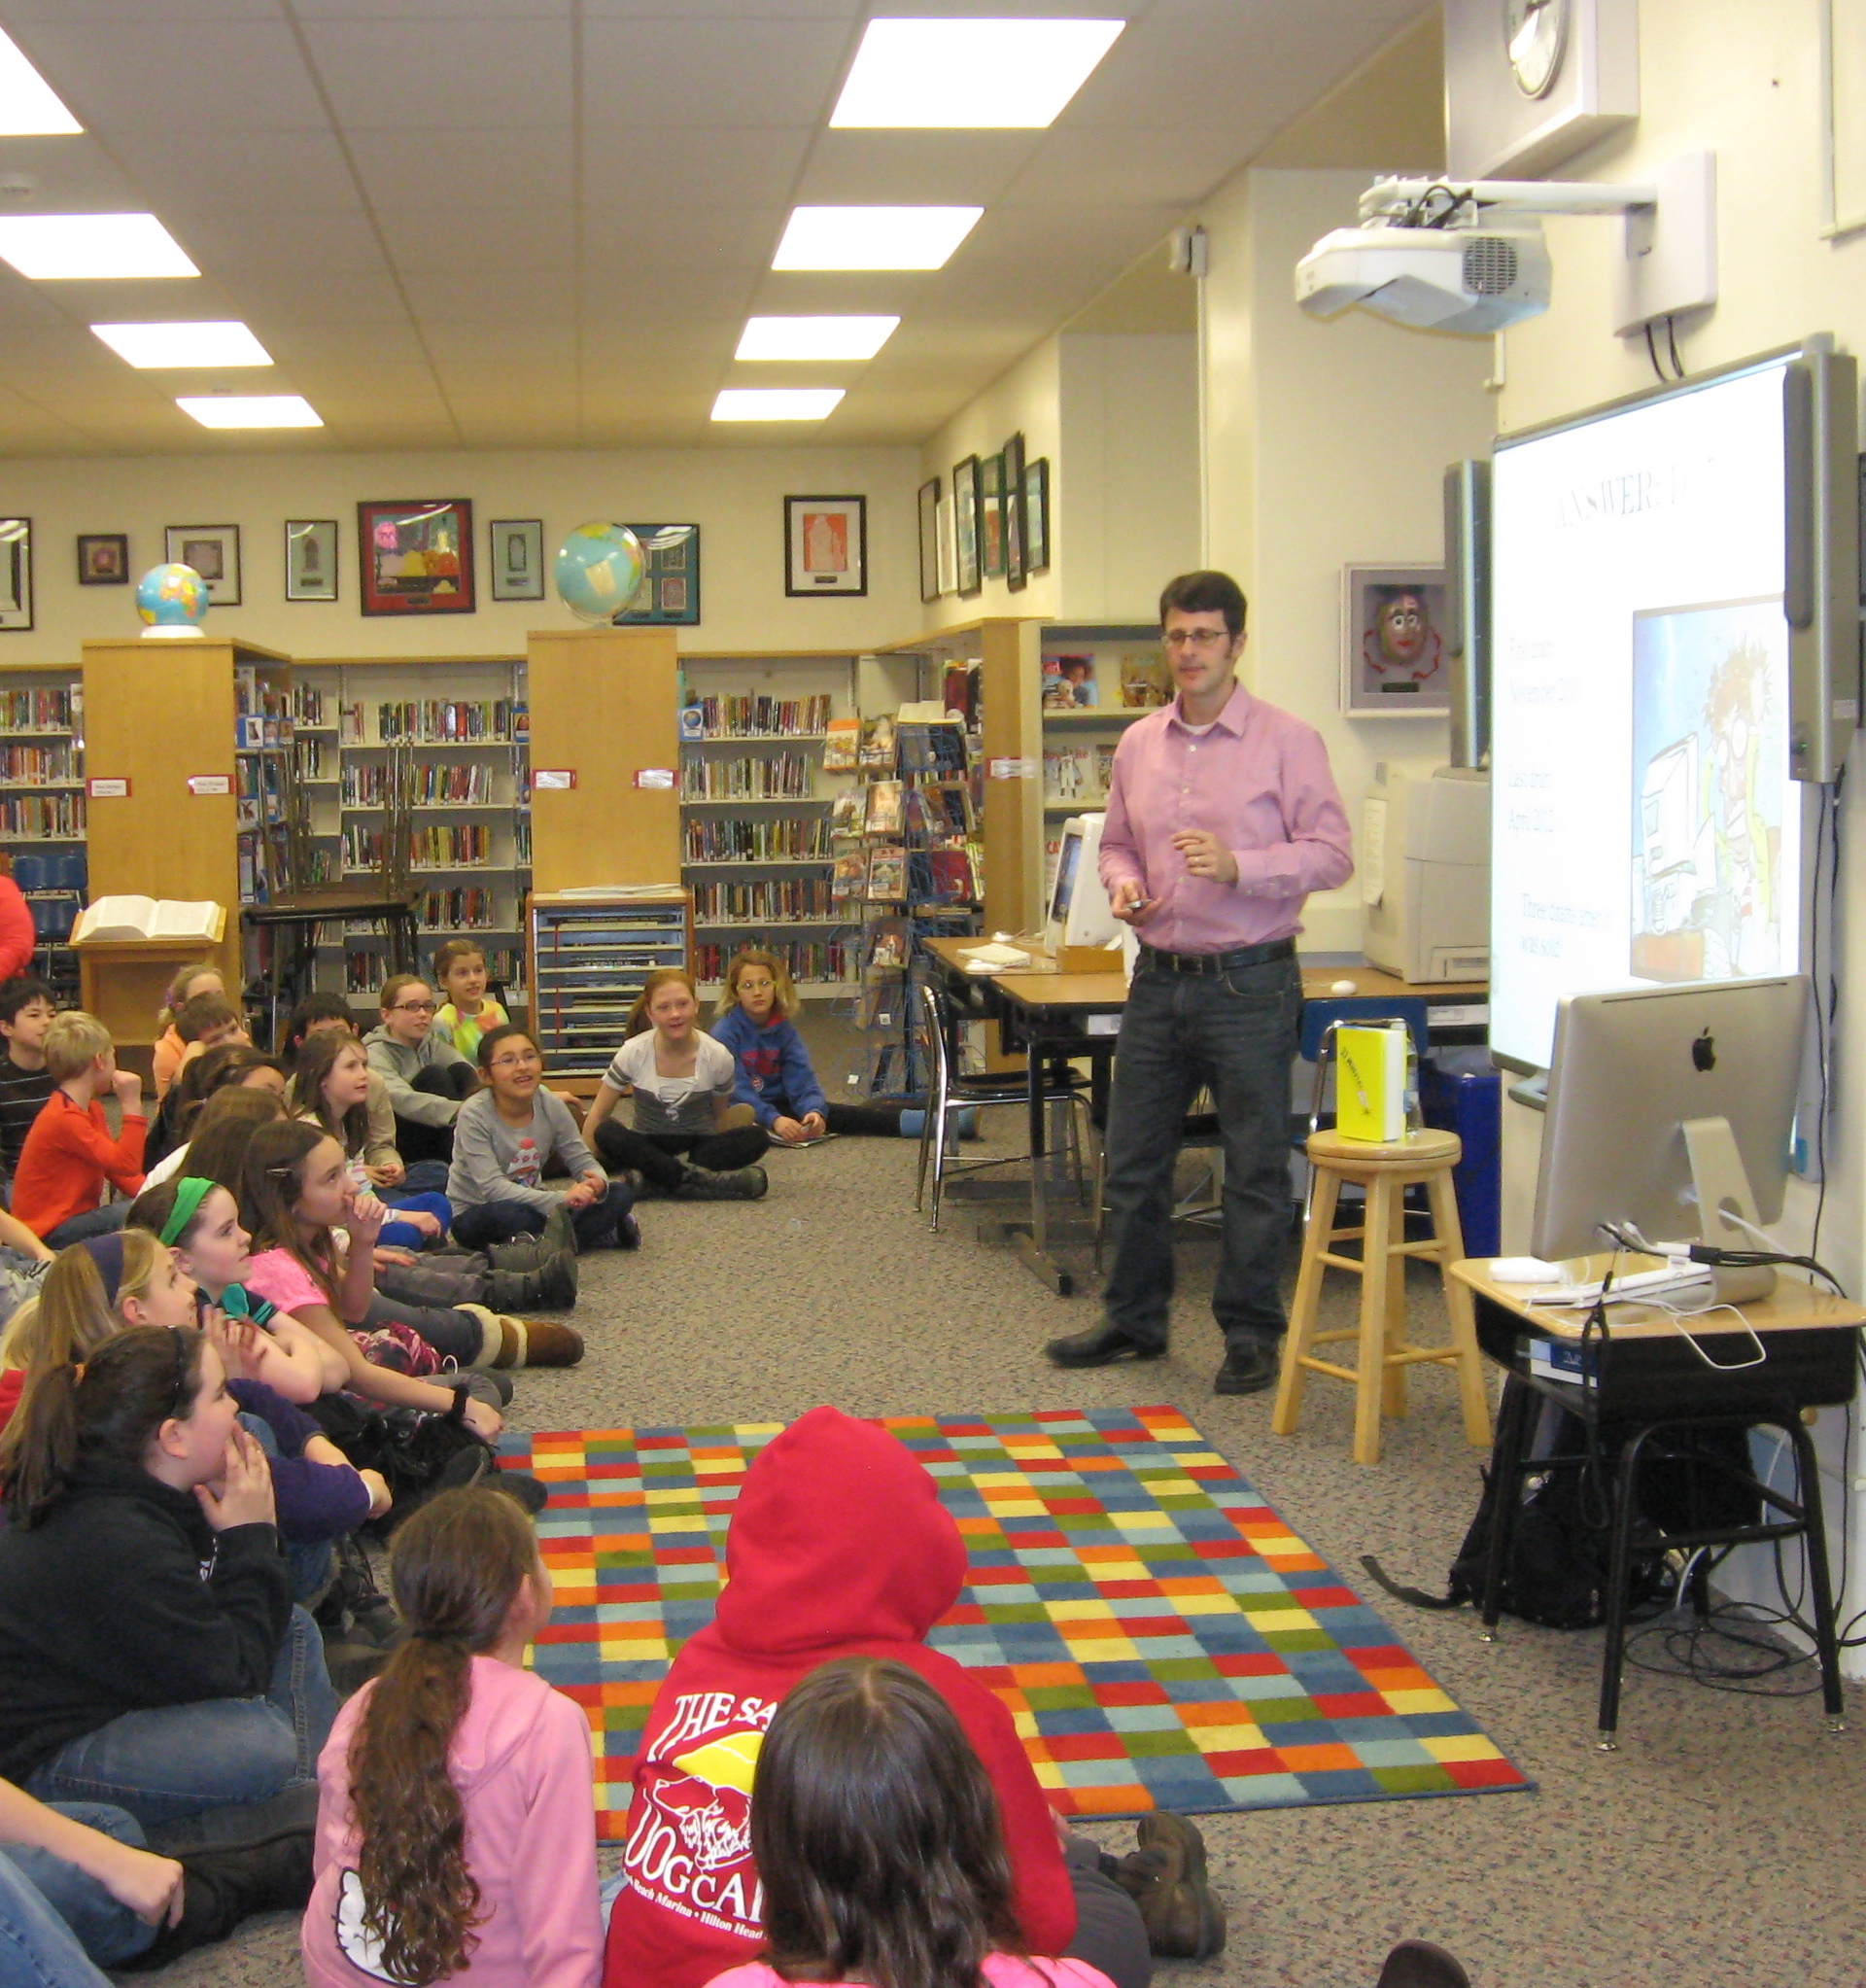 Read Testimonials About Todd Hasak-Lowy School Visits